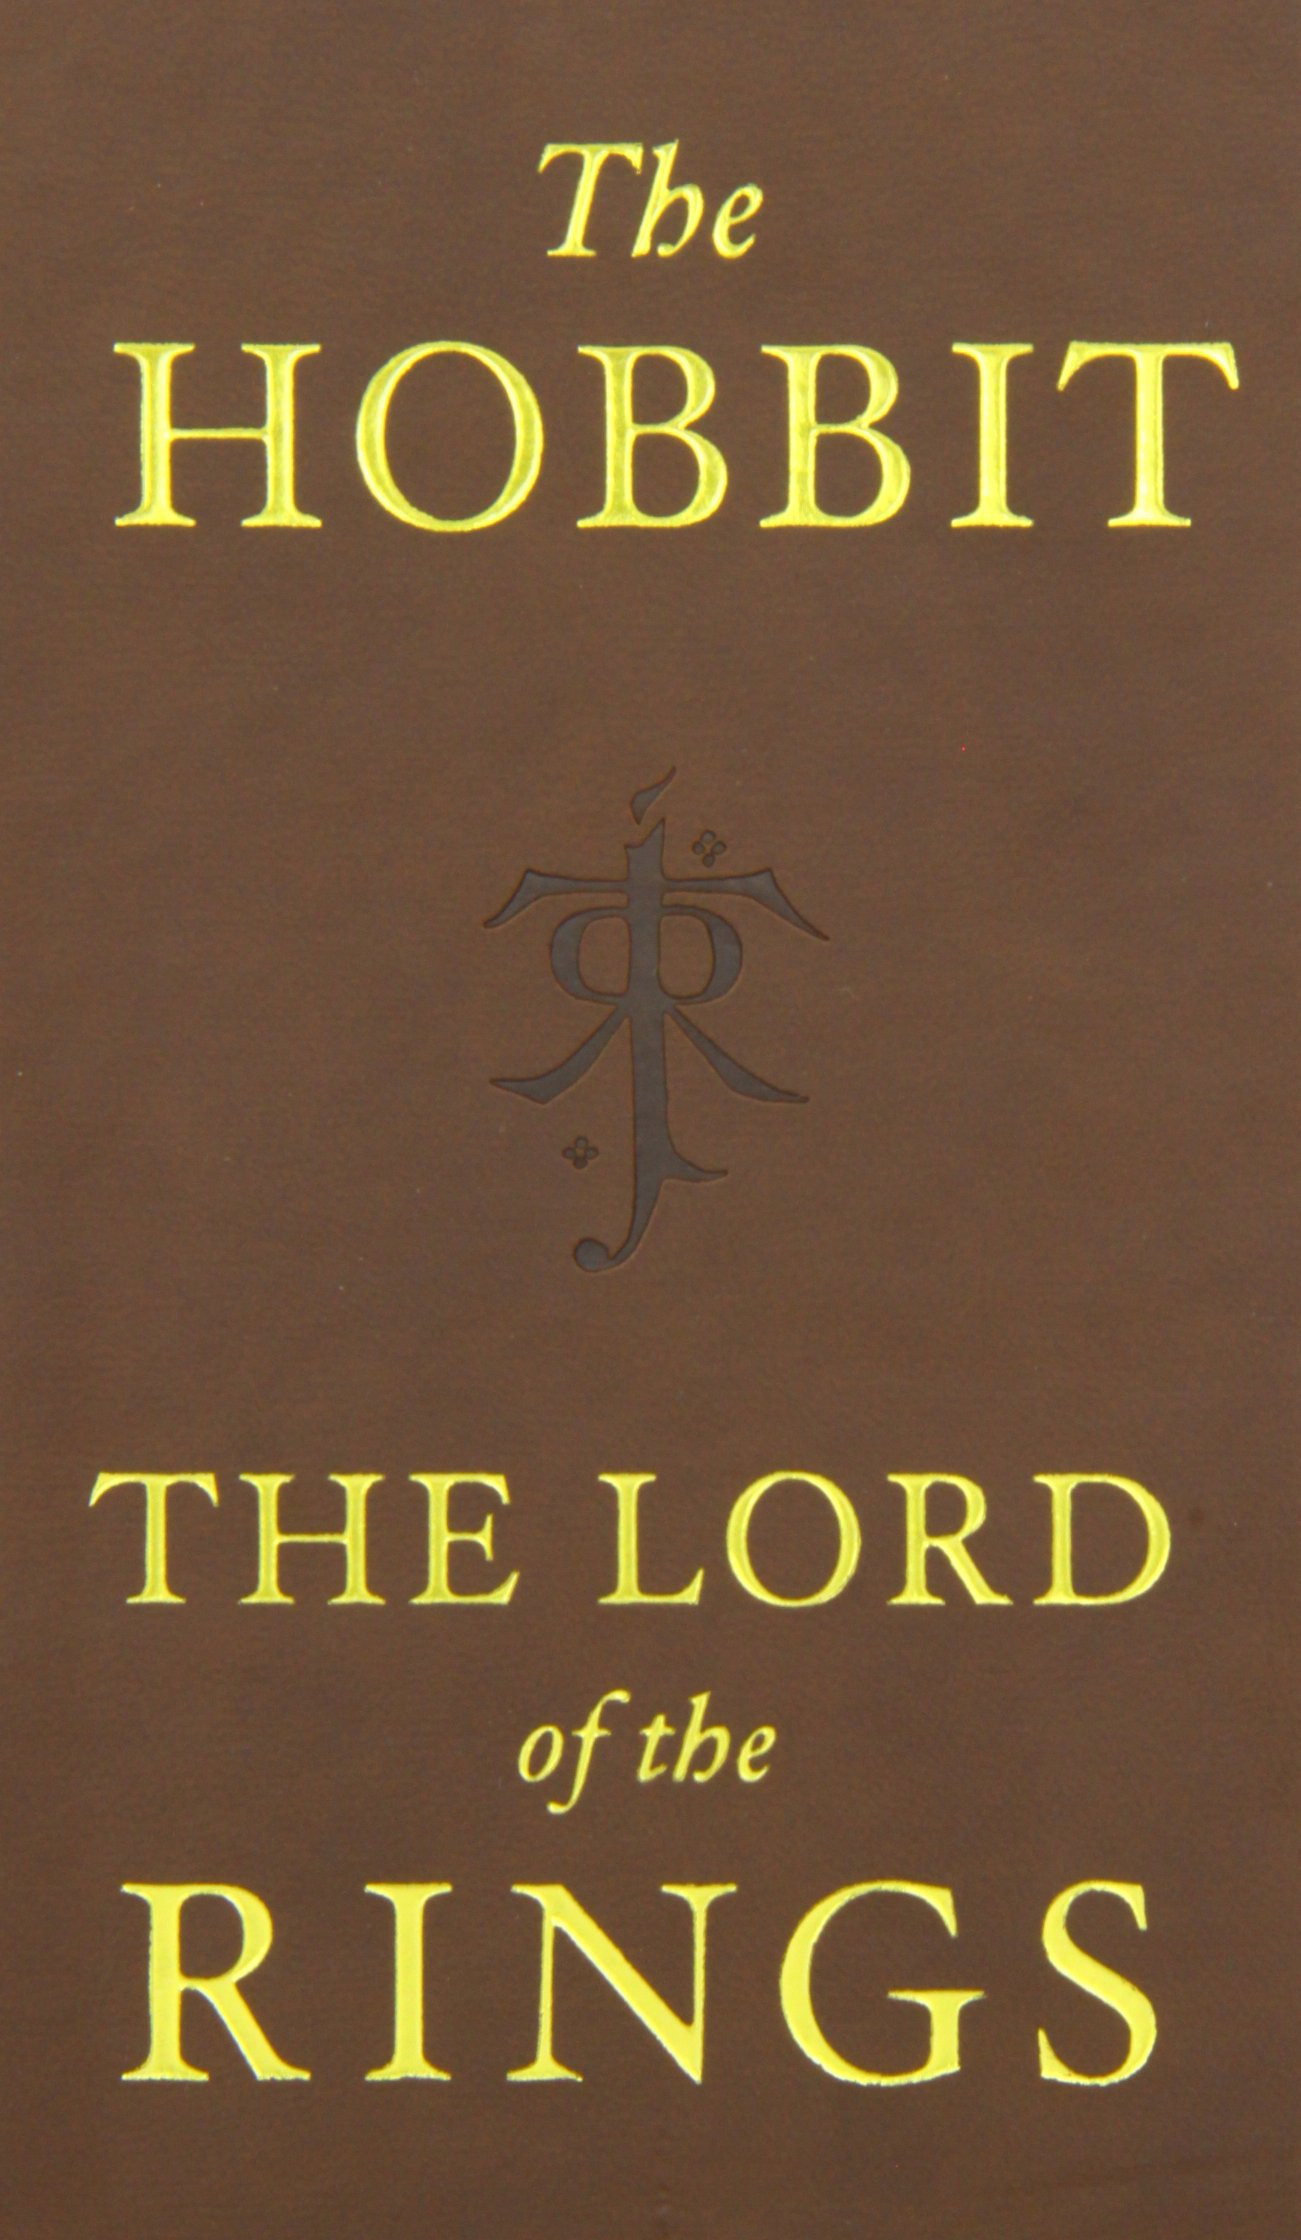 The Hobbit; The Lord of the Rings